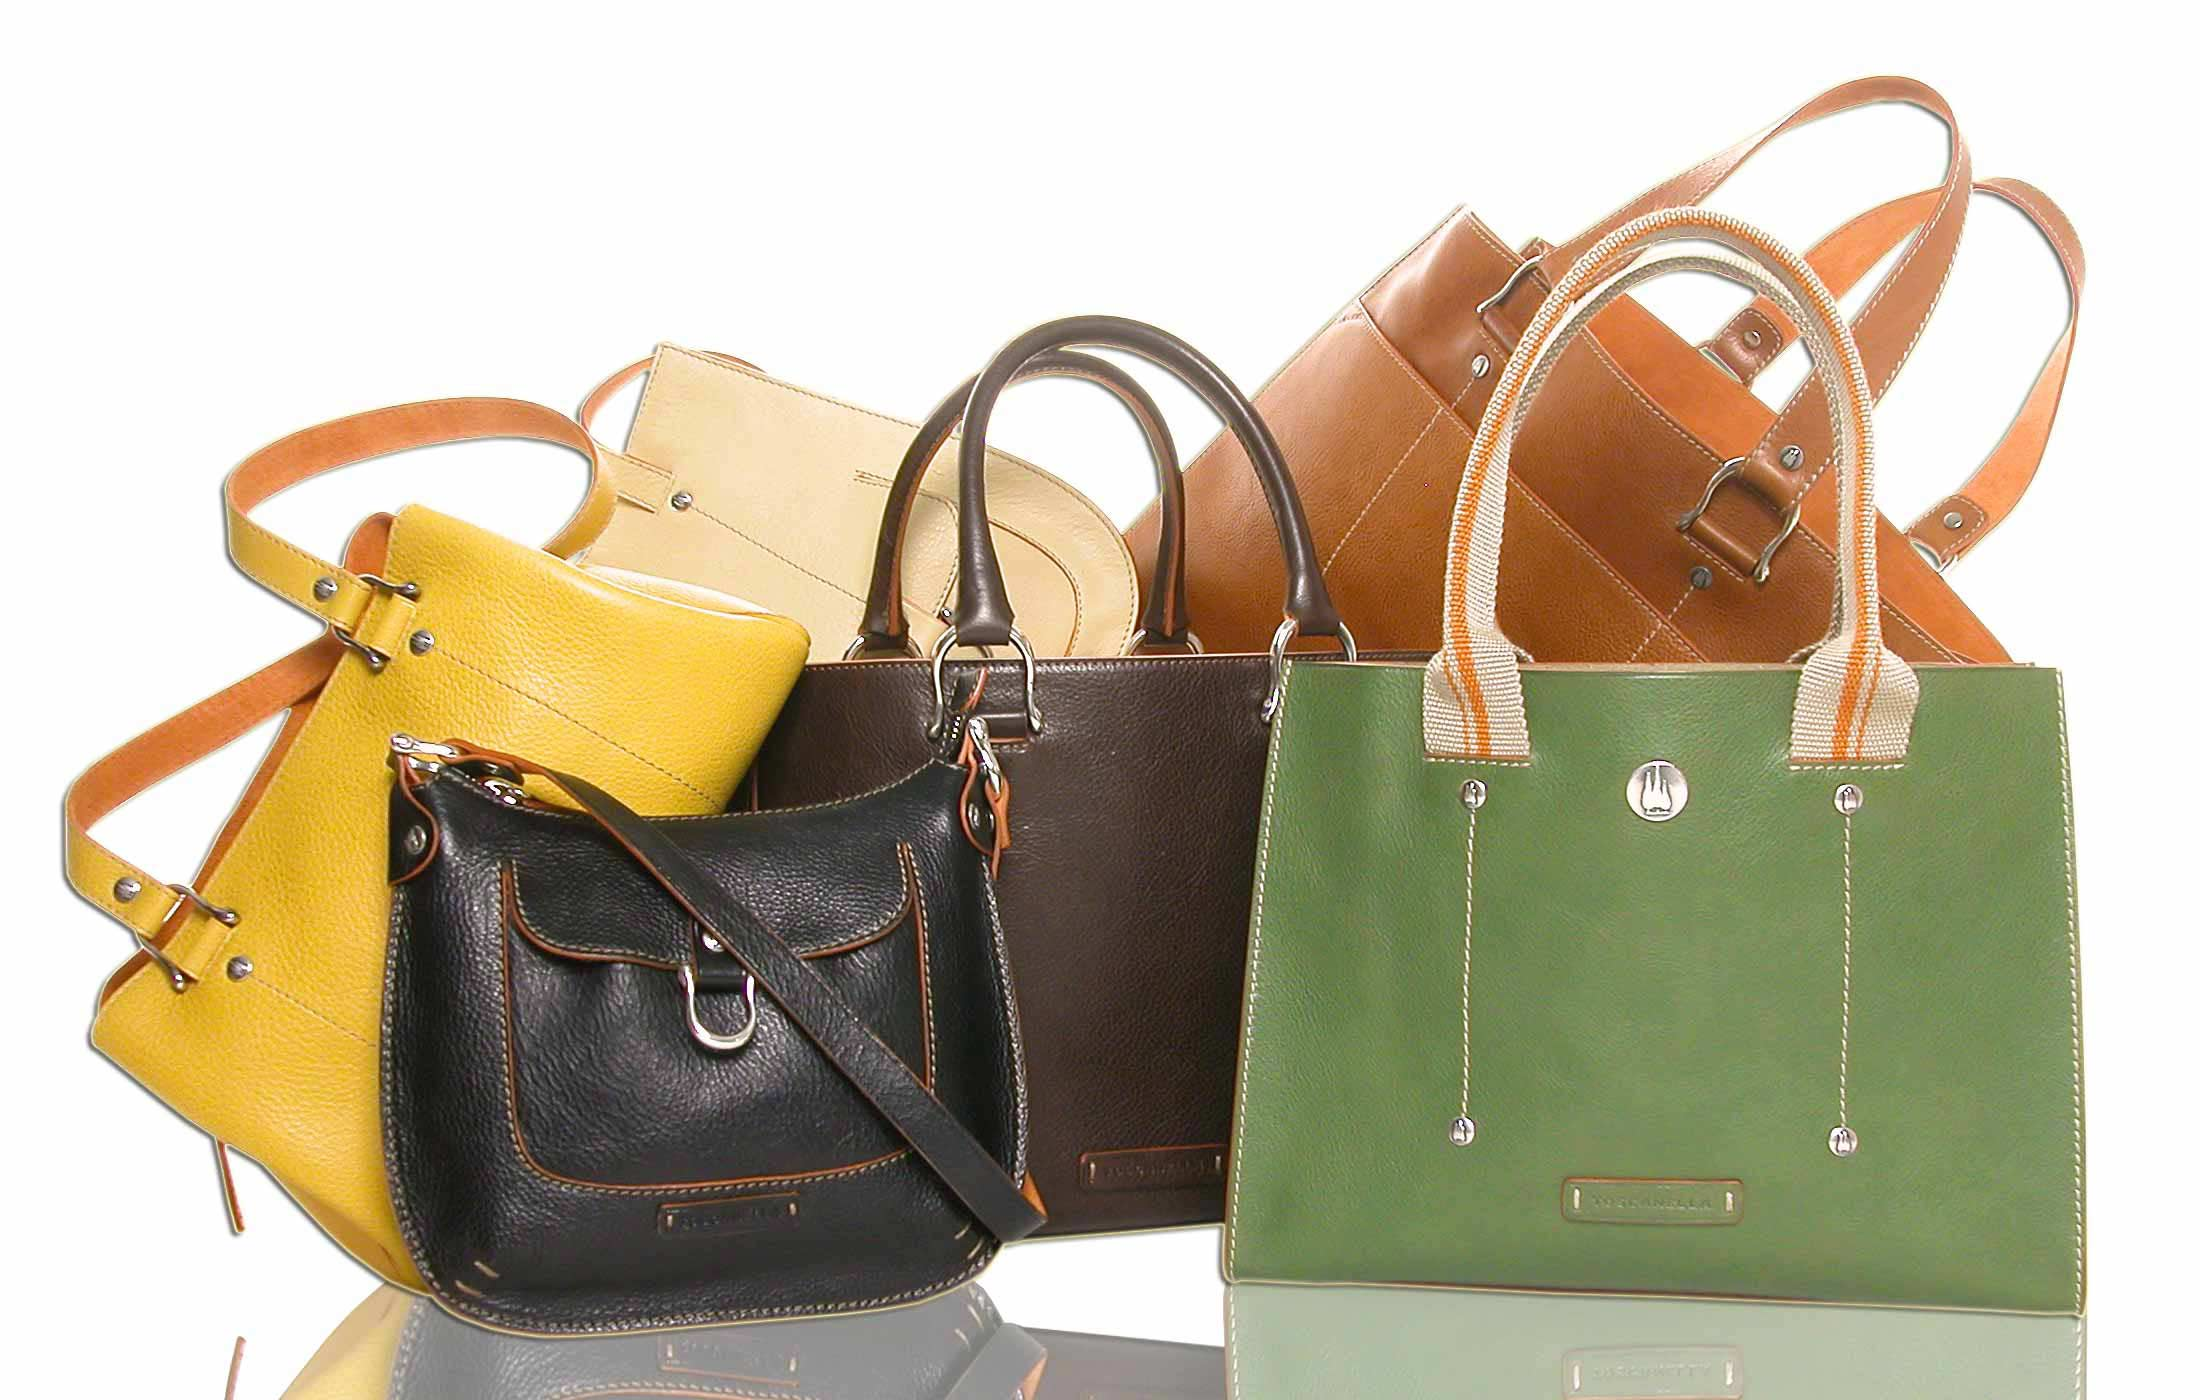 Toscanella Italian Leather Goods From Florence Italy